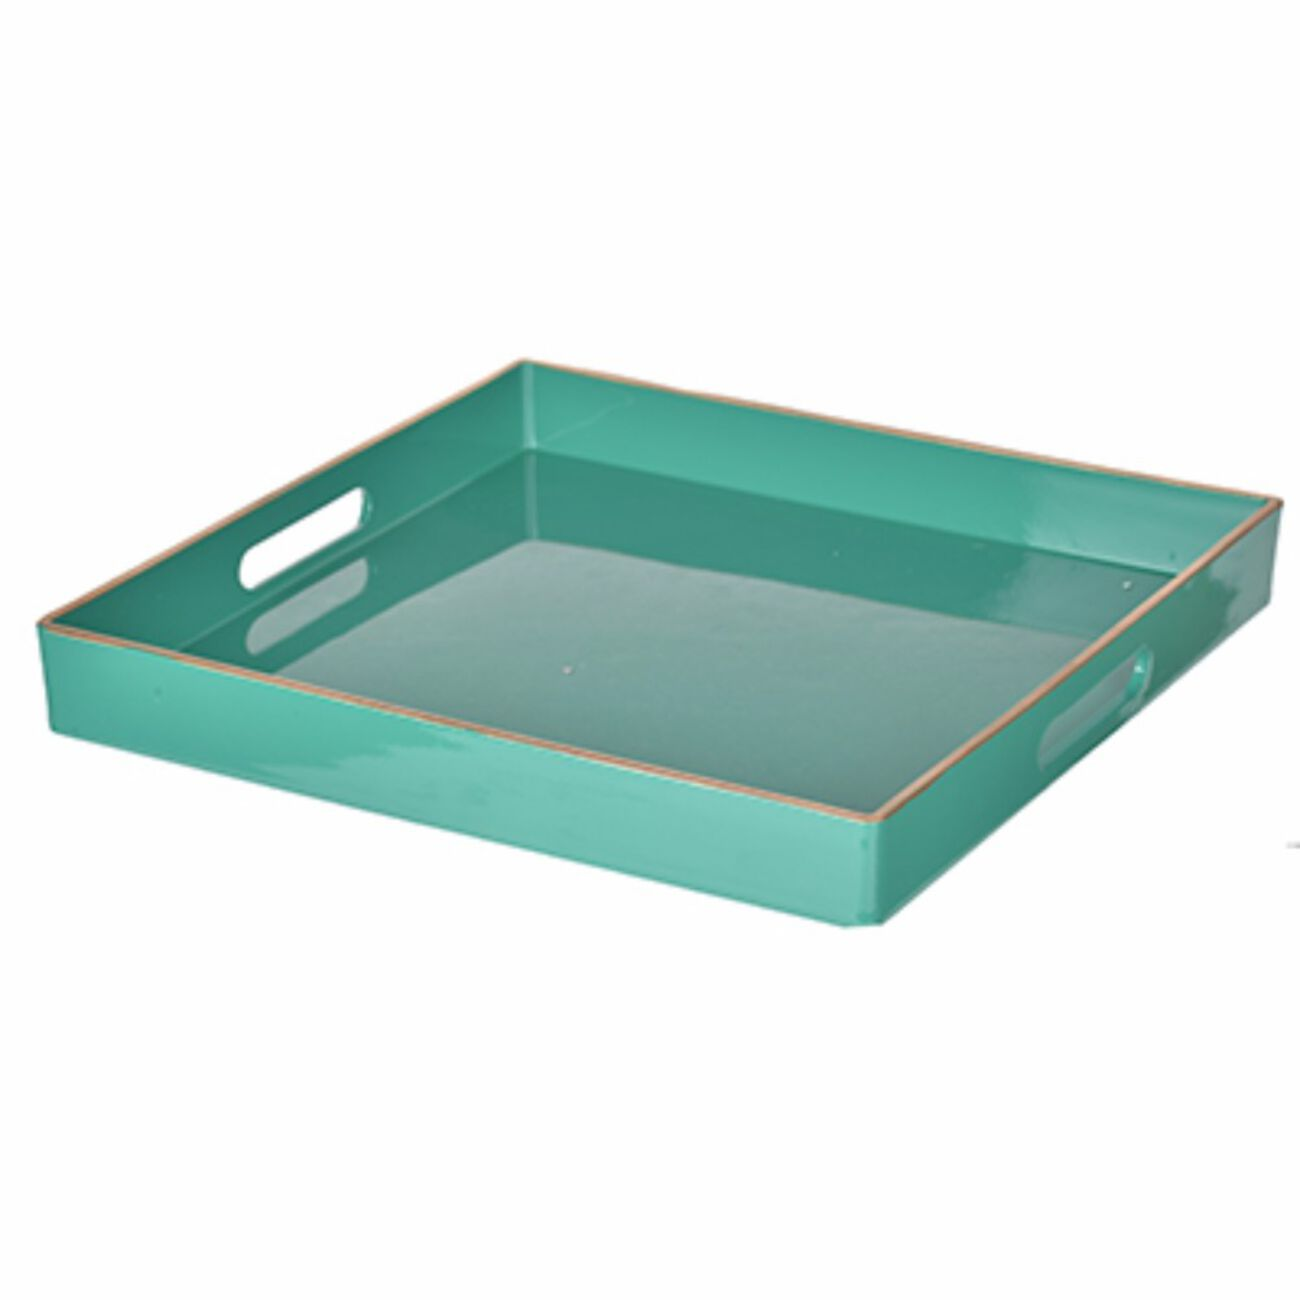 Mimosa Square Tray With Cutout Handles, Green